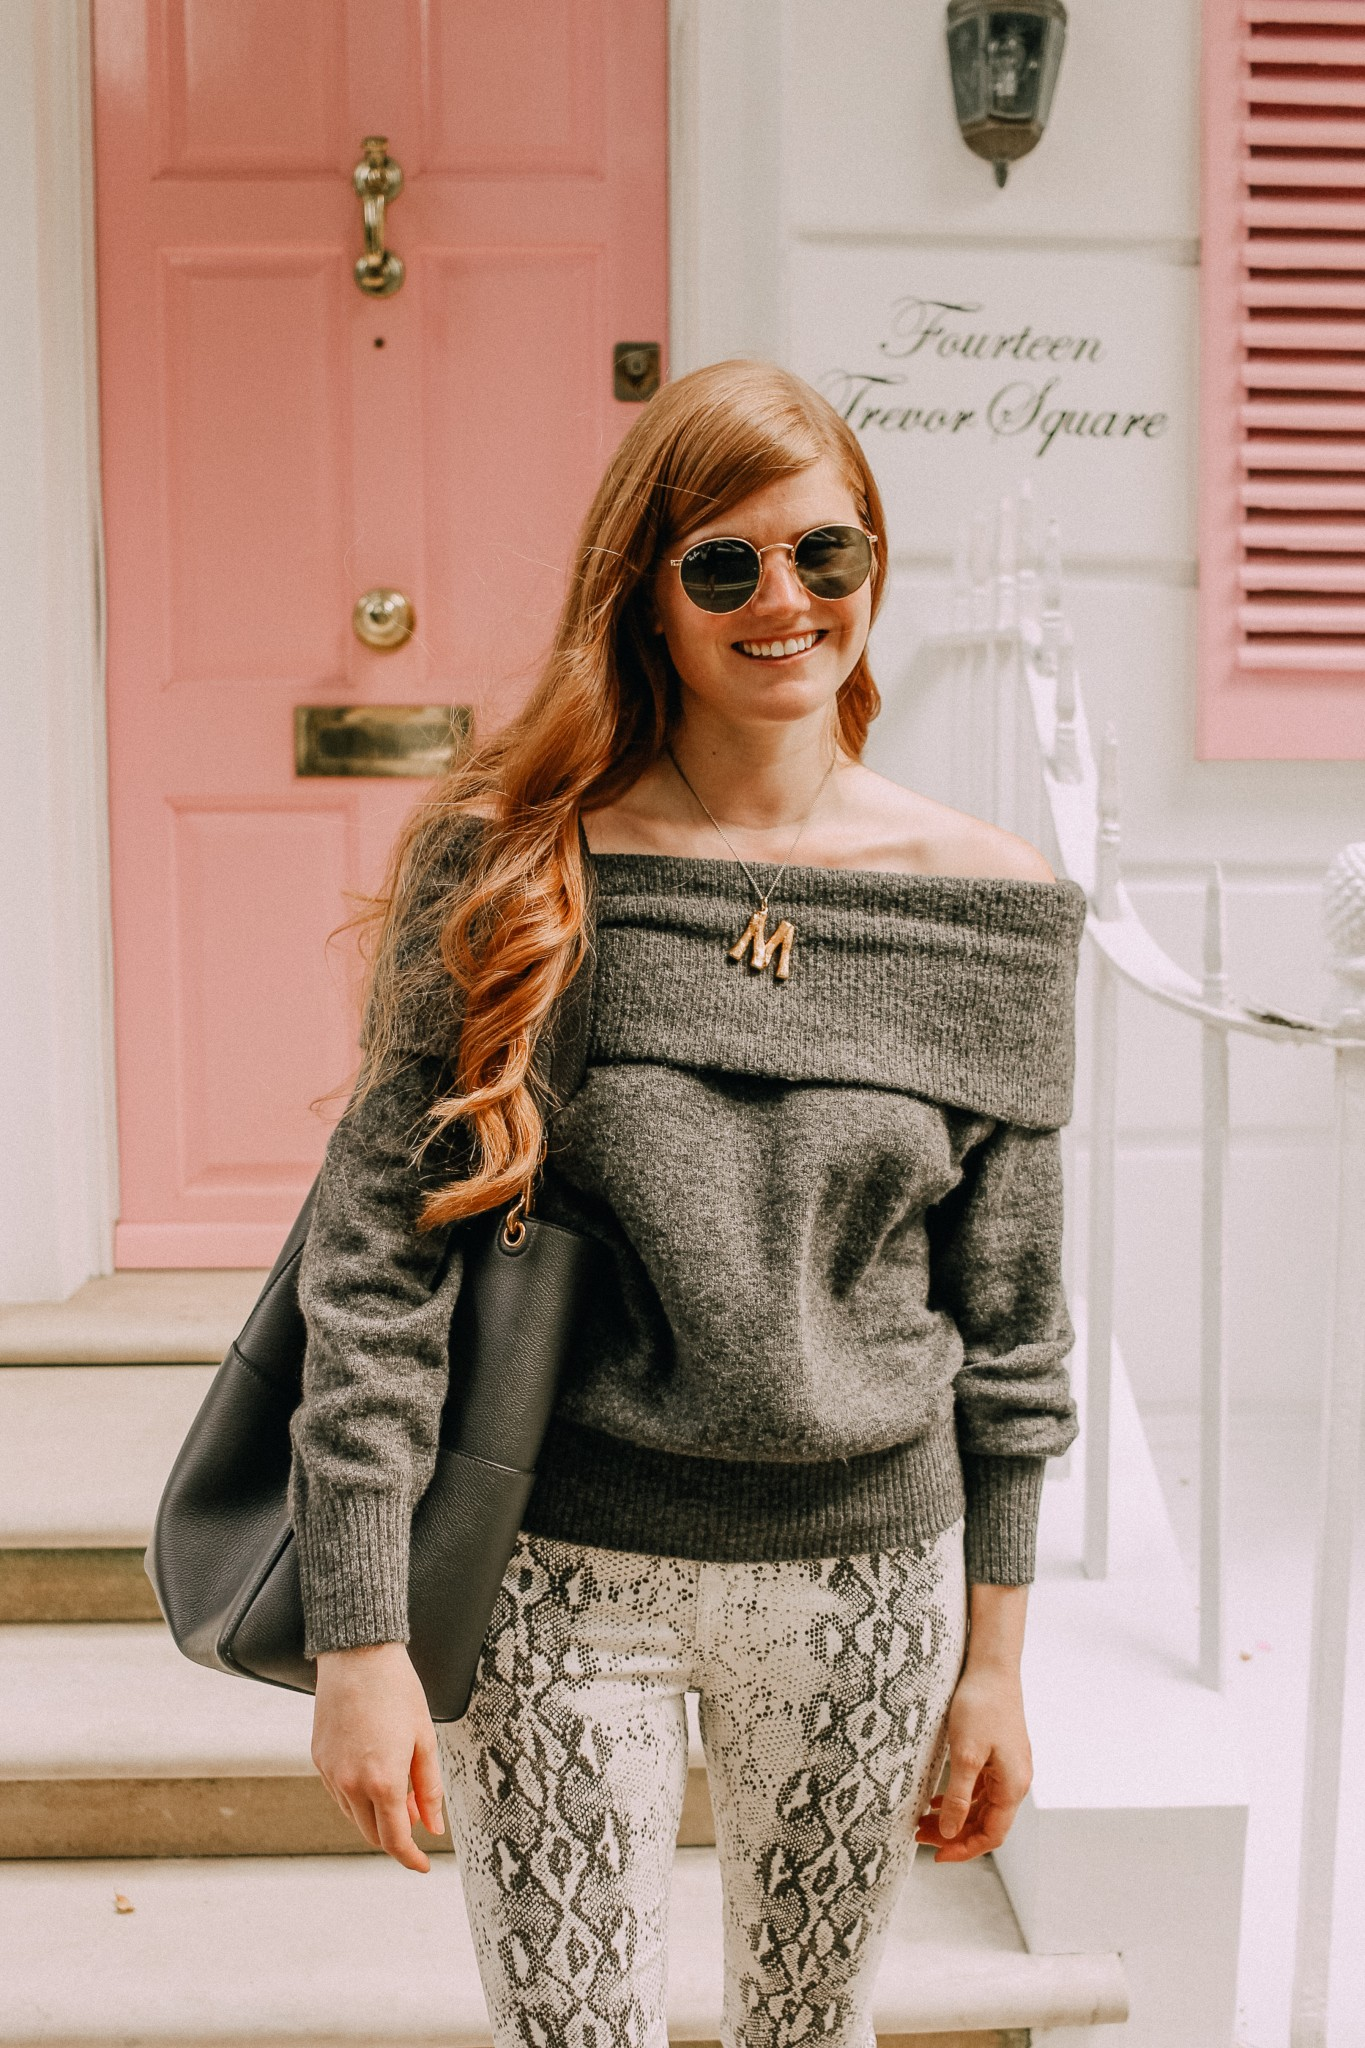 Lifestyle blogger Mollie Moore shares how to wear one of falls top trends: snakeskin | One of the best Fall trends featured by popular London fashion blogger, Mollie Moore: snakeskin pants